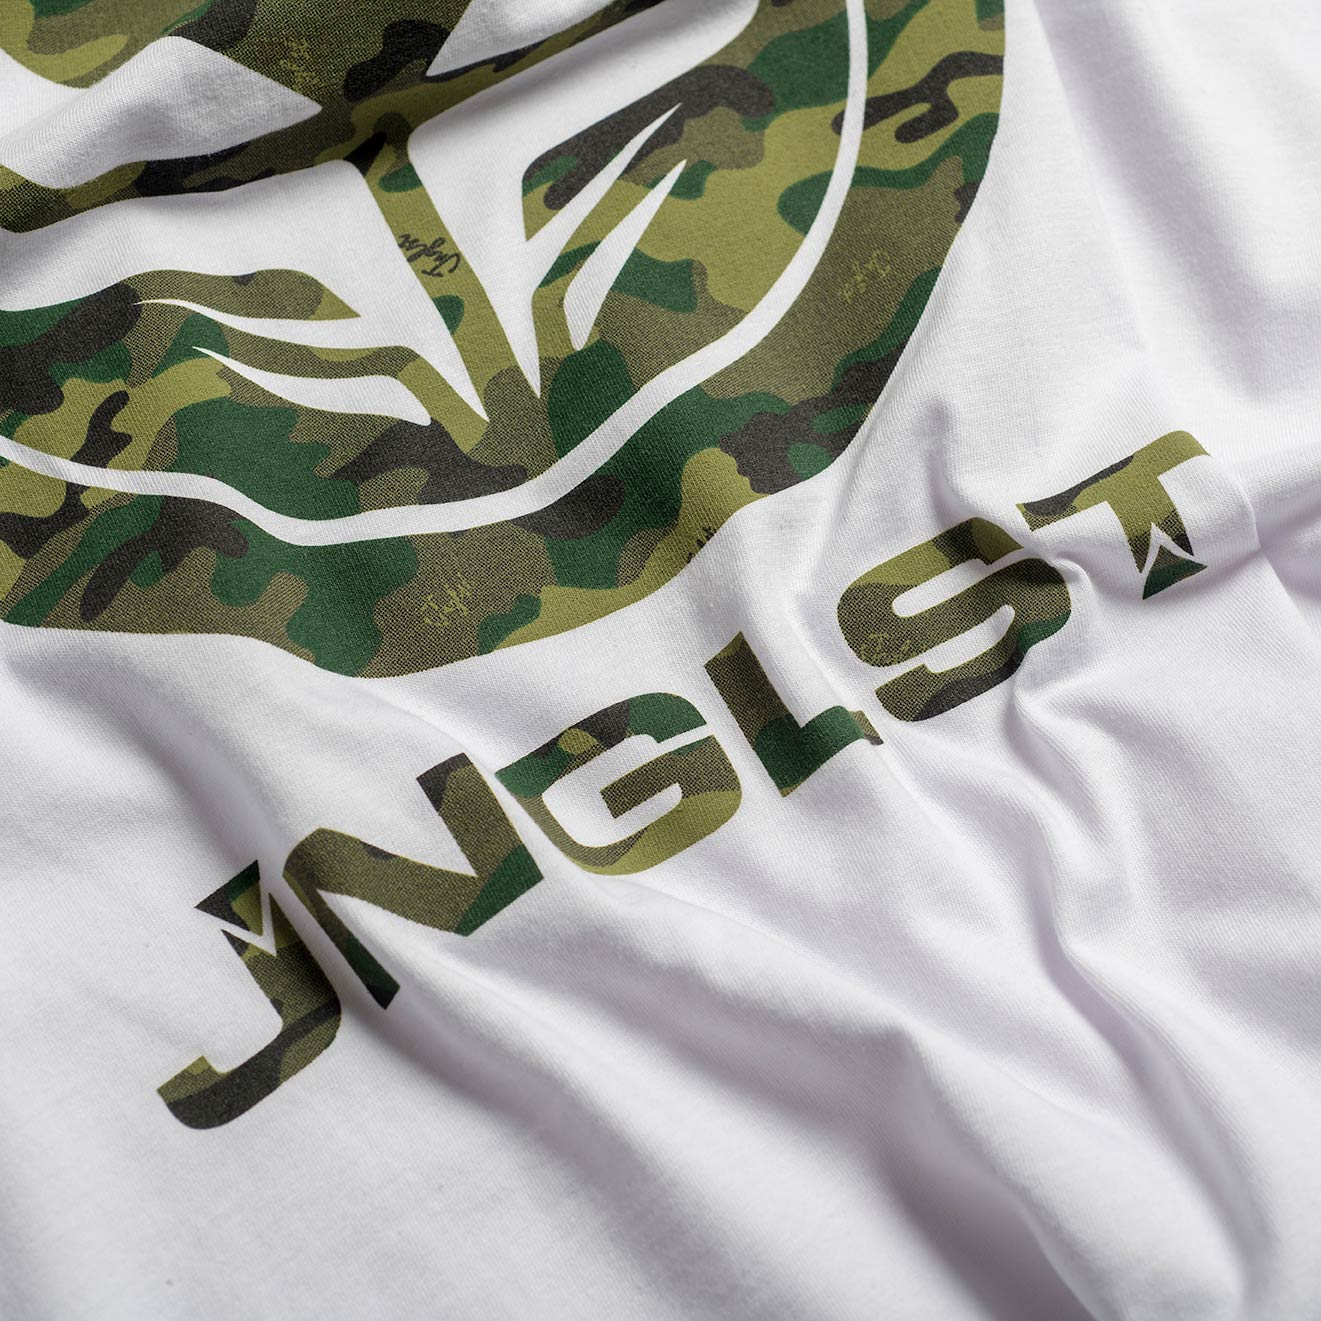 Dread Recordings Jnglst Collab T-Shirt